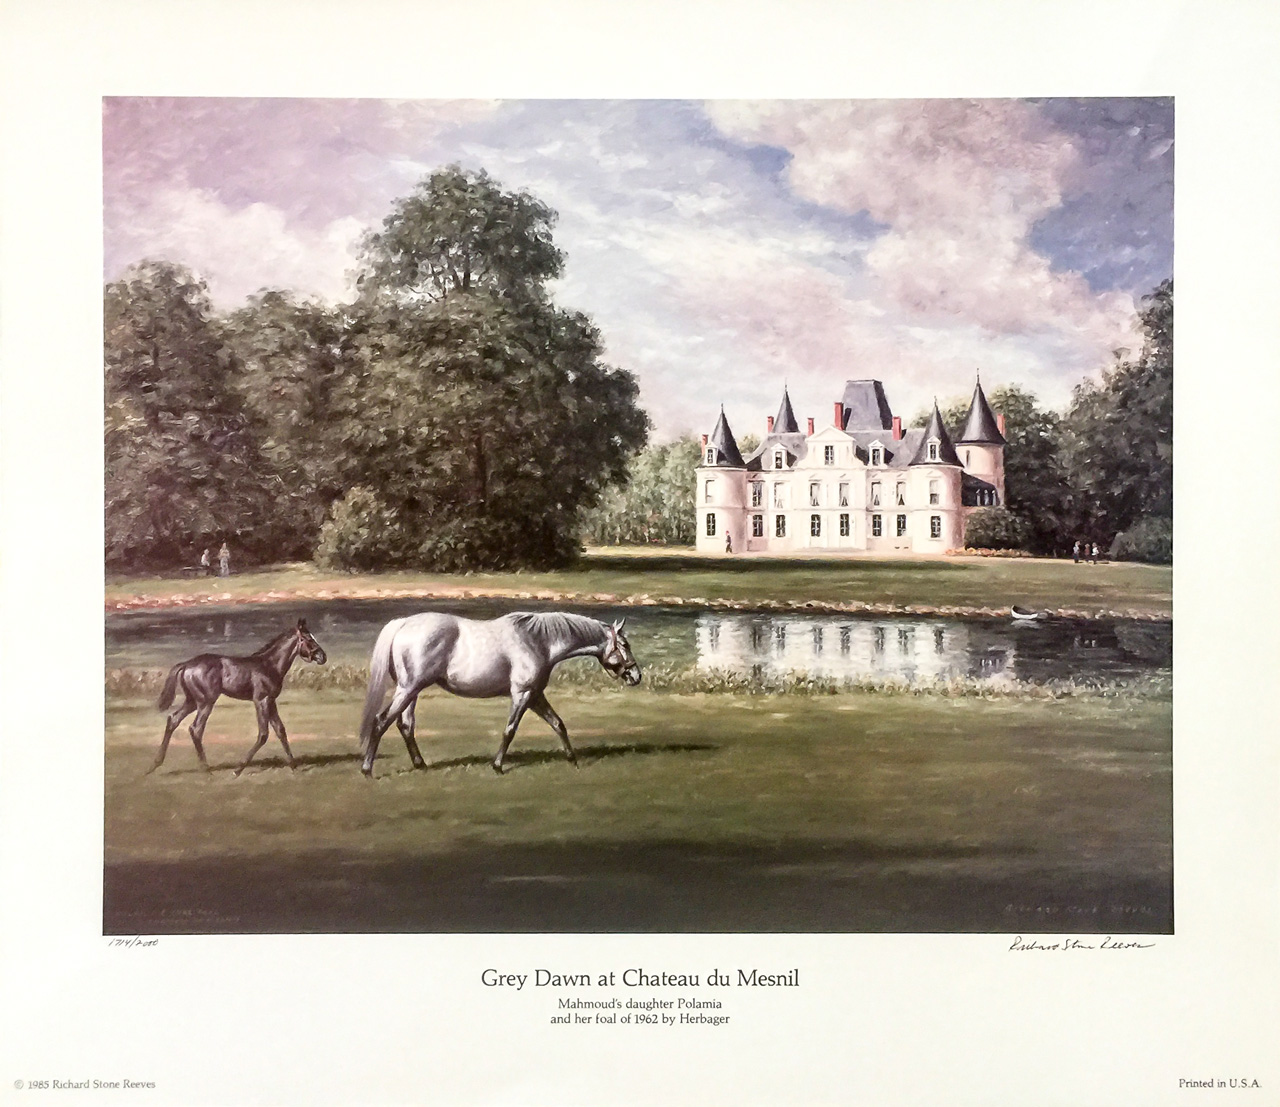 """Grey Dawn at Chateau du Mesnil"" Edition: 1714 of 2000, 16.75 x 19.25 inches, Signed & Numbered"